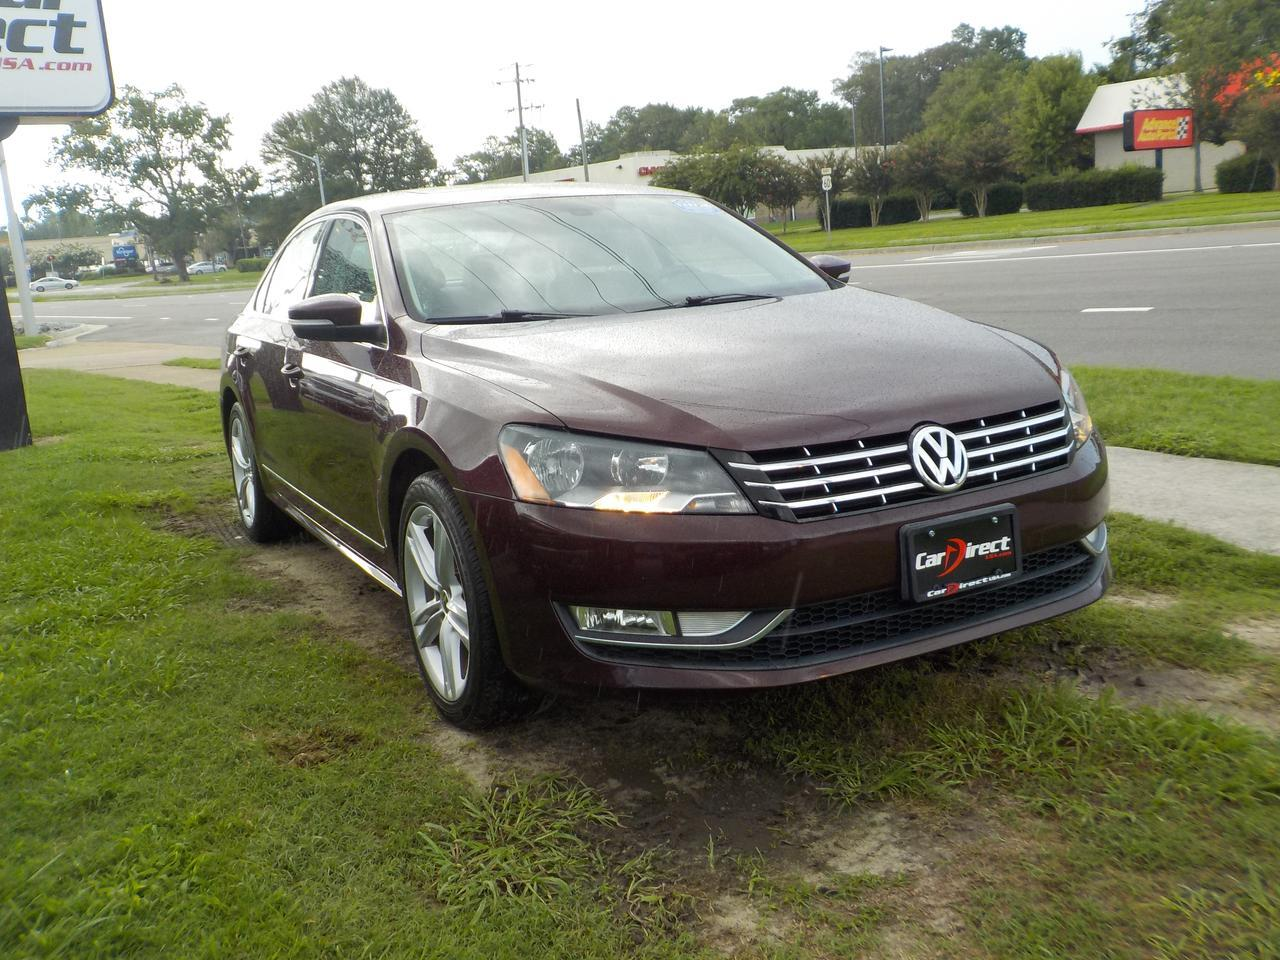 2013 VOLKSWAGON PASSAT TDI SEL PREMIUM, DVD ENTERTAINMENT SYSTEM, MEMORY SEATS, & SUNROOF!! Virginia Beach VA